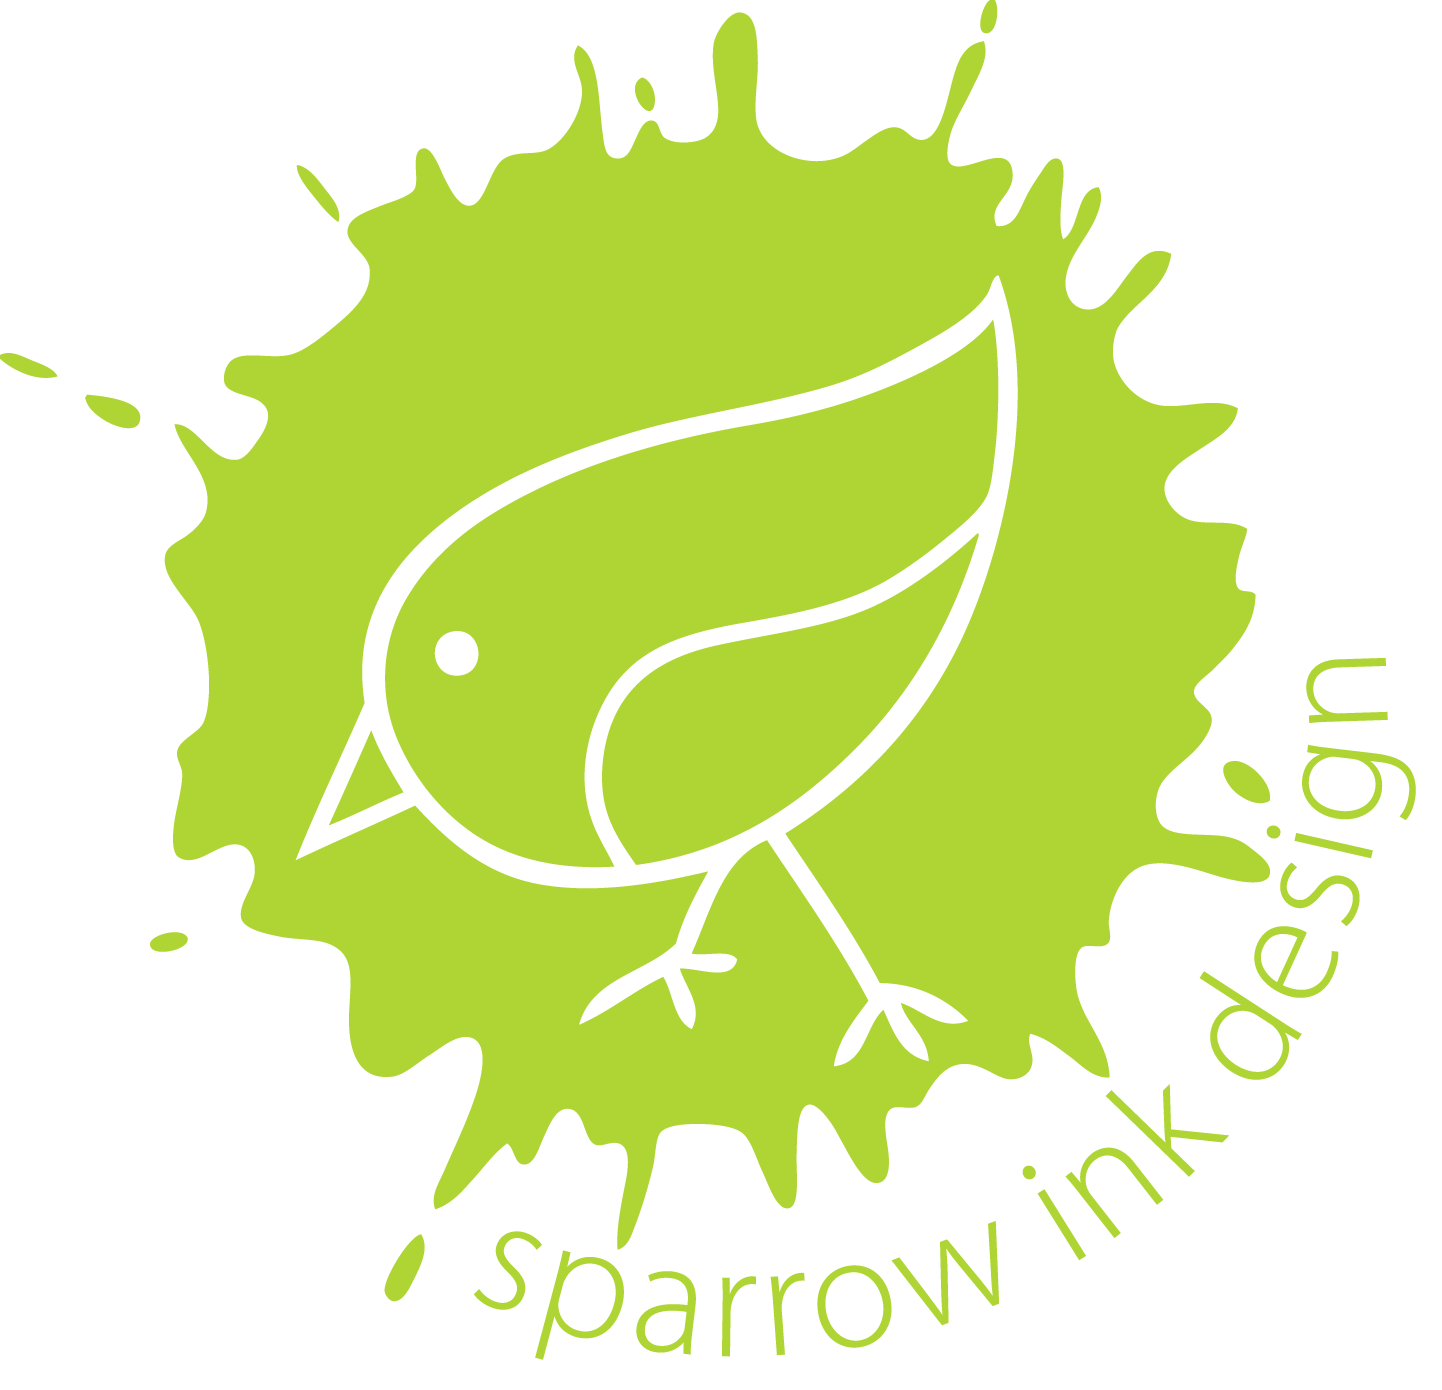 Sparrow Ink Design